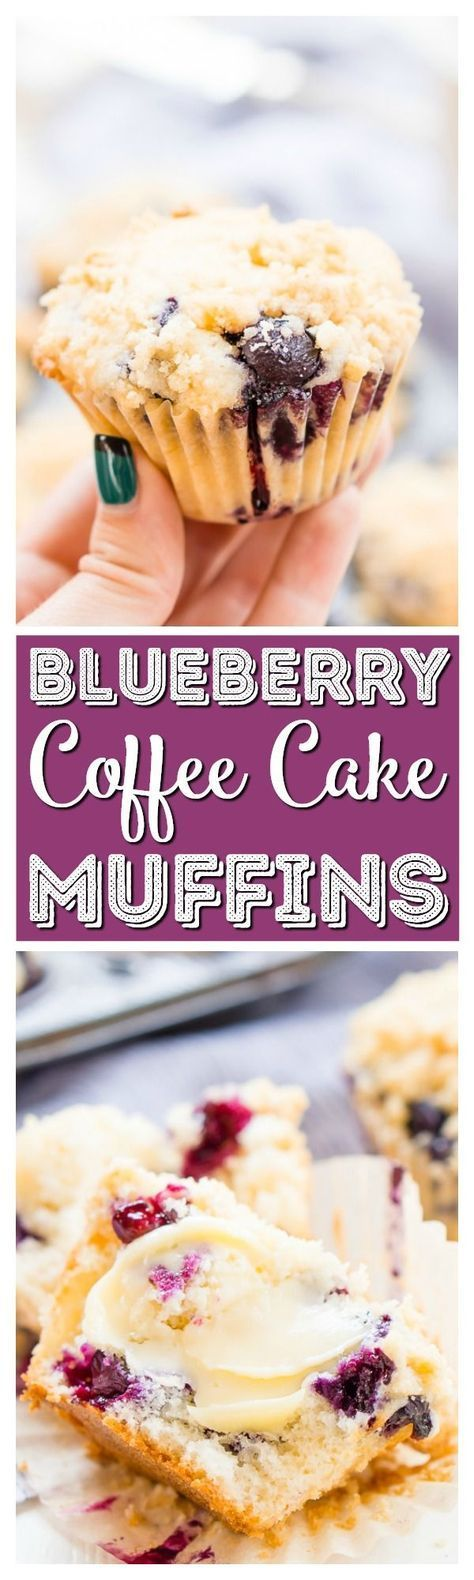 Blueberry Coffee Cake Muffins are made with tangy buttermilk and delicious blueberries for a yummy breakfast muffin topped with a sugary butter crumble. via @sugarandsoulco